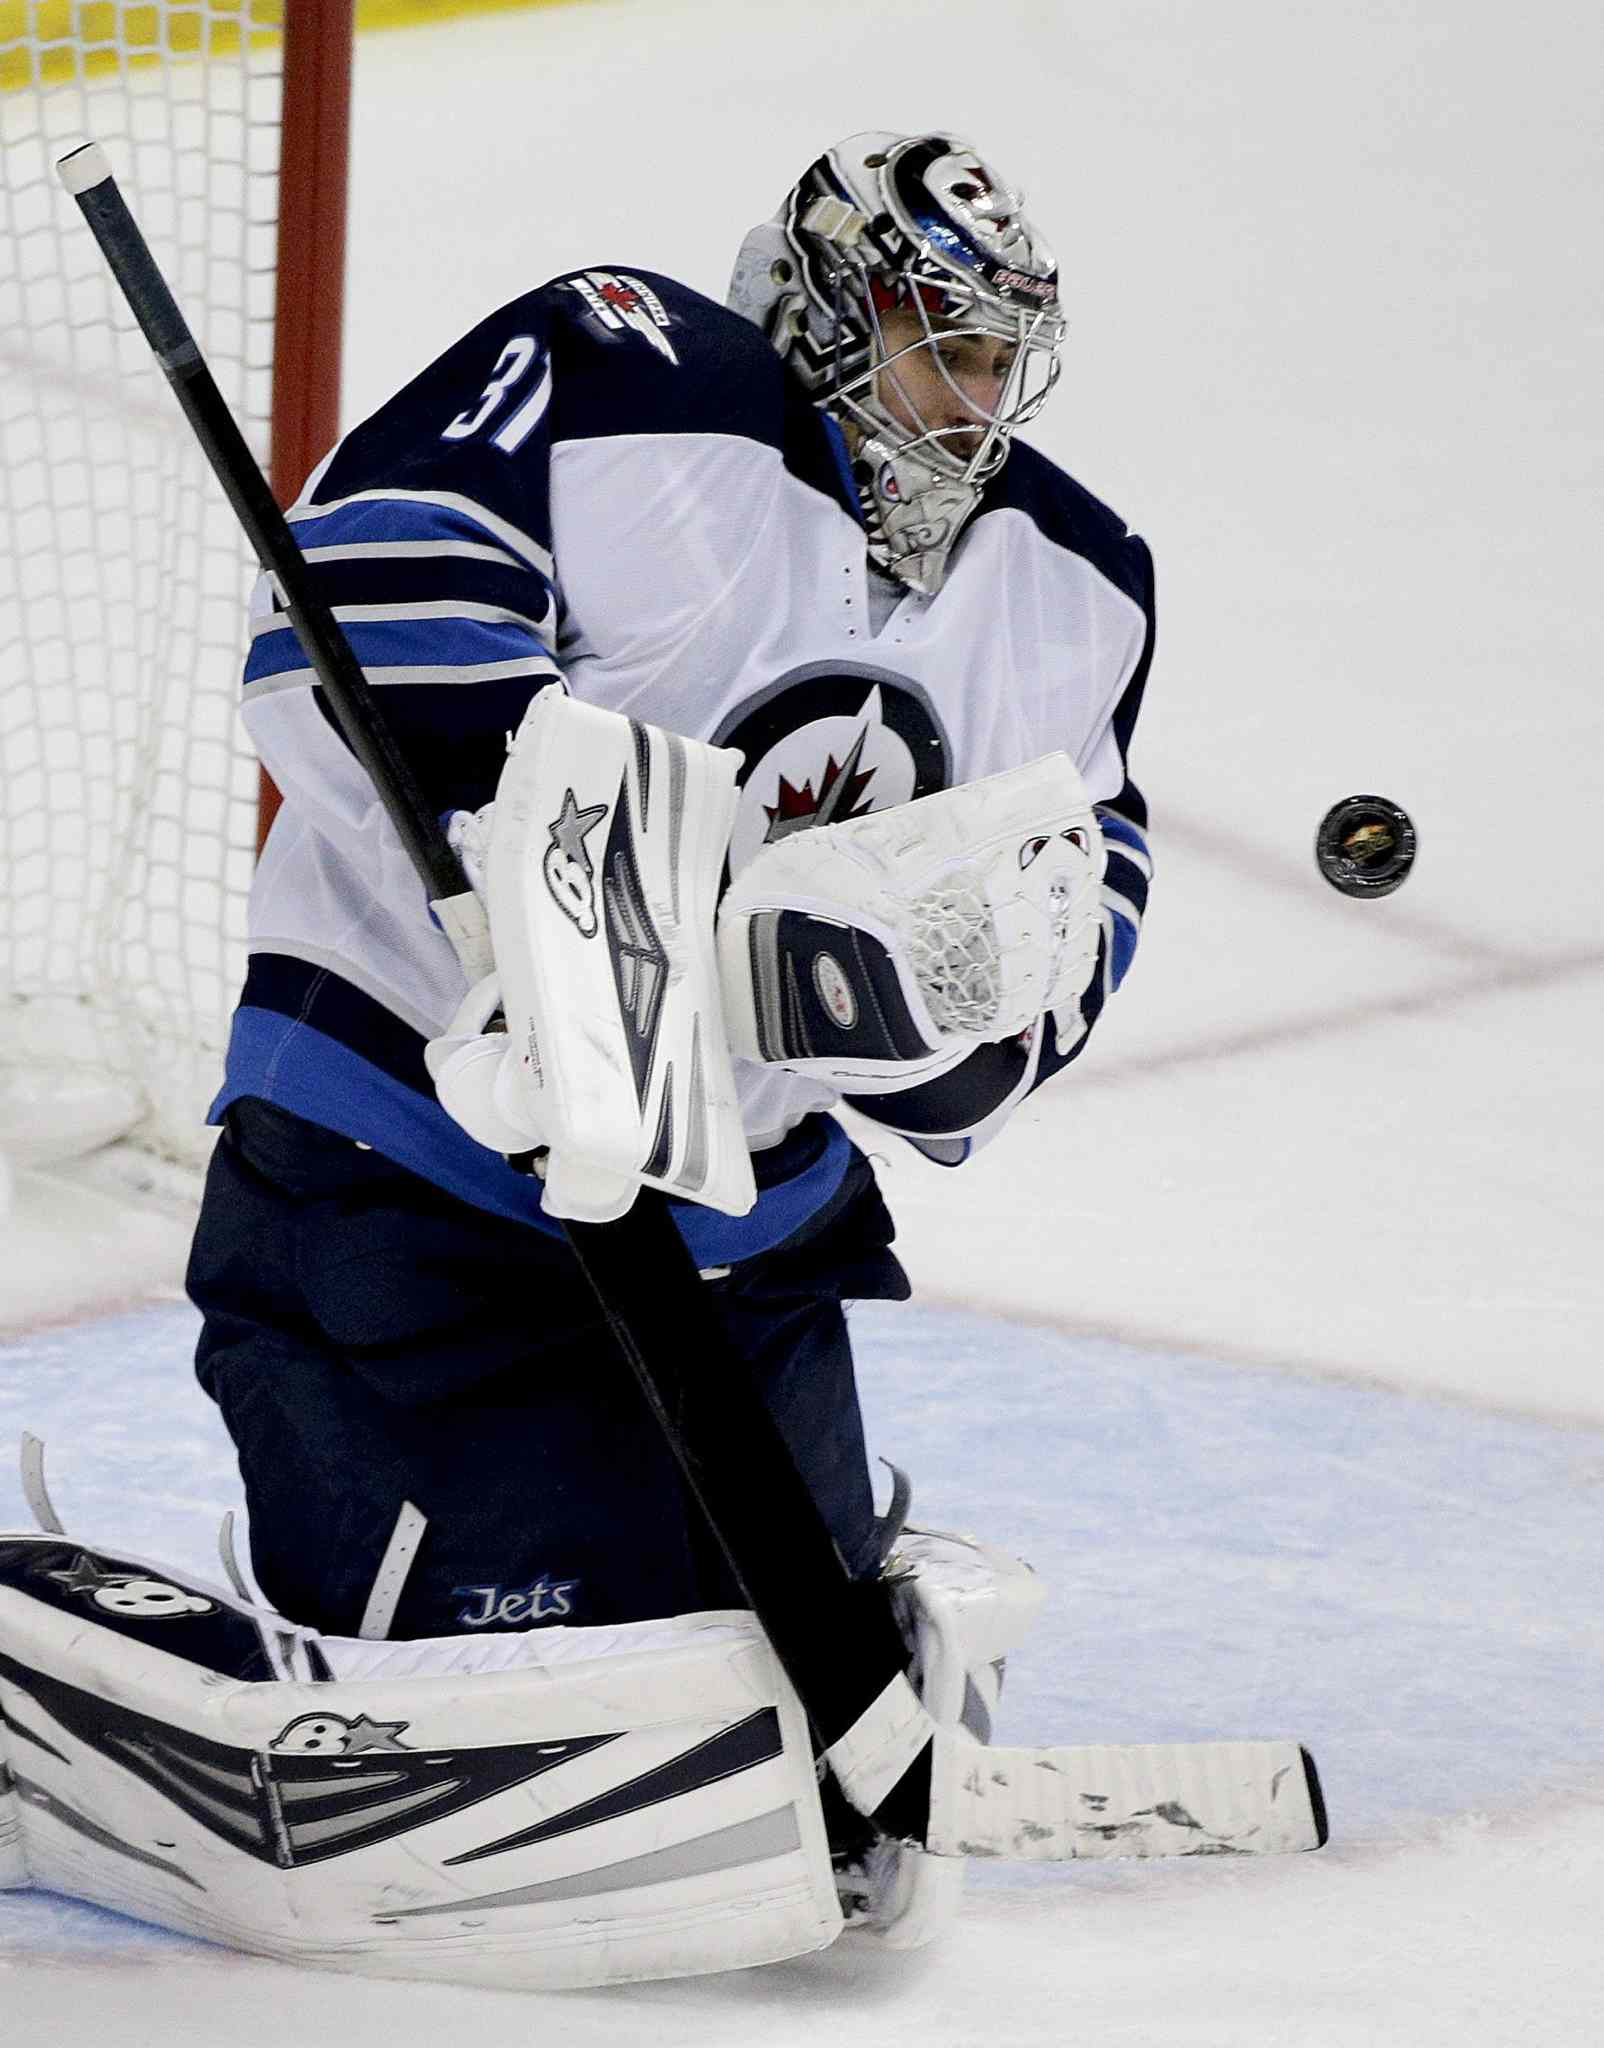 Winnipeg Jets' goalie Ondrej Pavelec makes a second-period save against the Anaheim Ducks Tuesday.